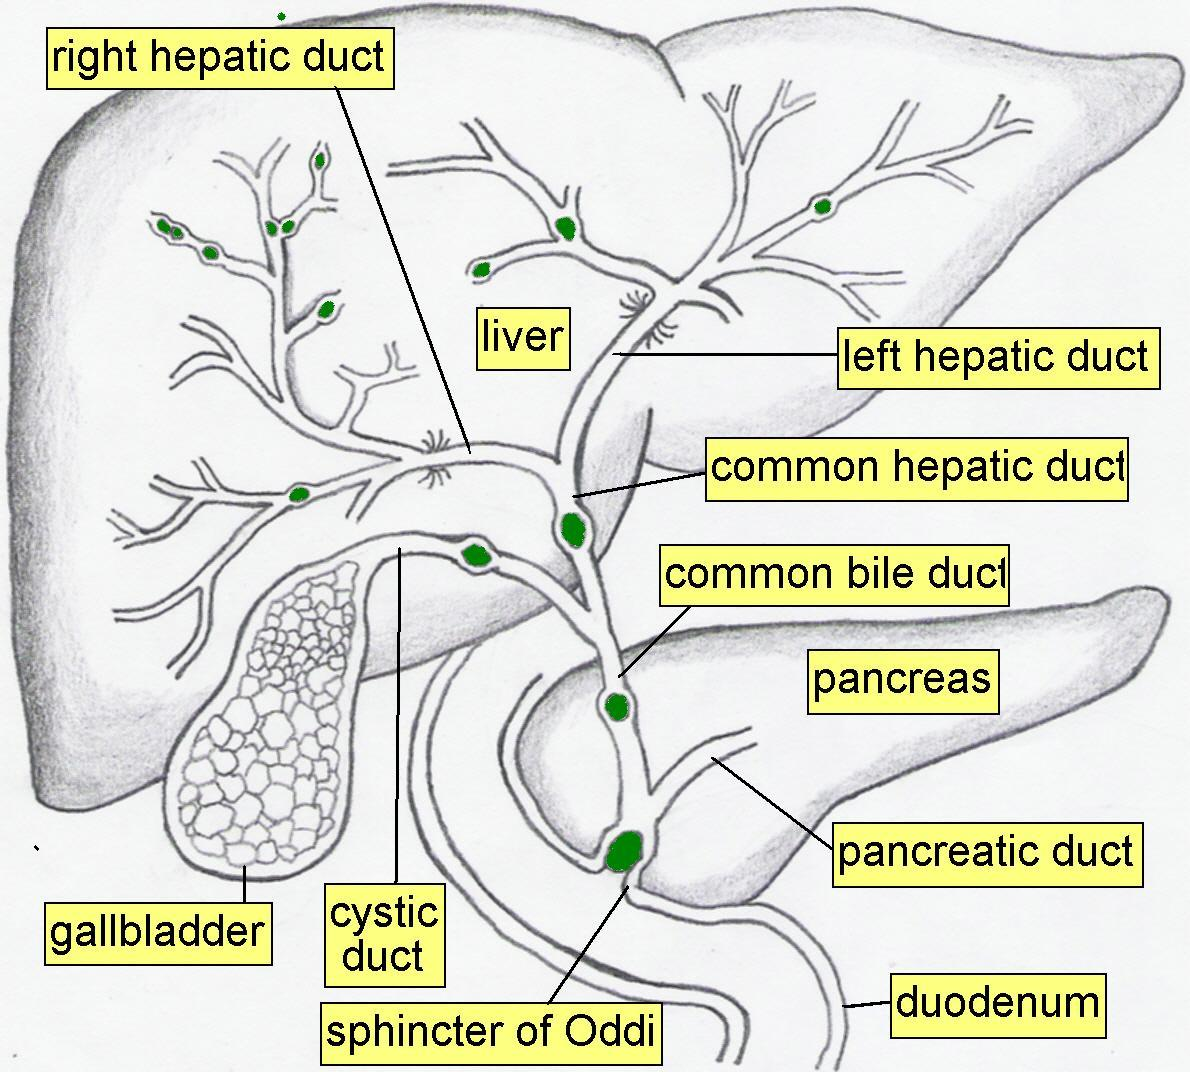 common bile duct and pancreatic duct. common bile duct,